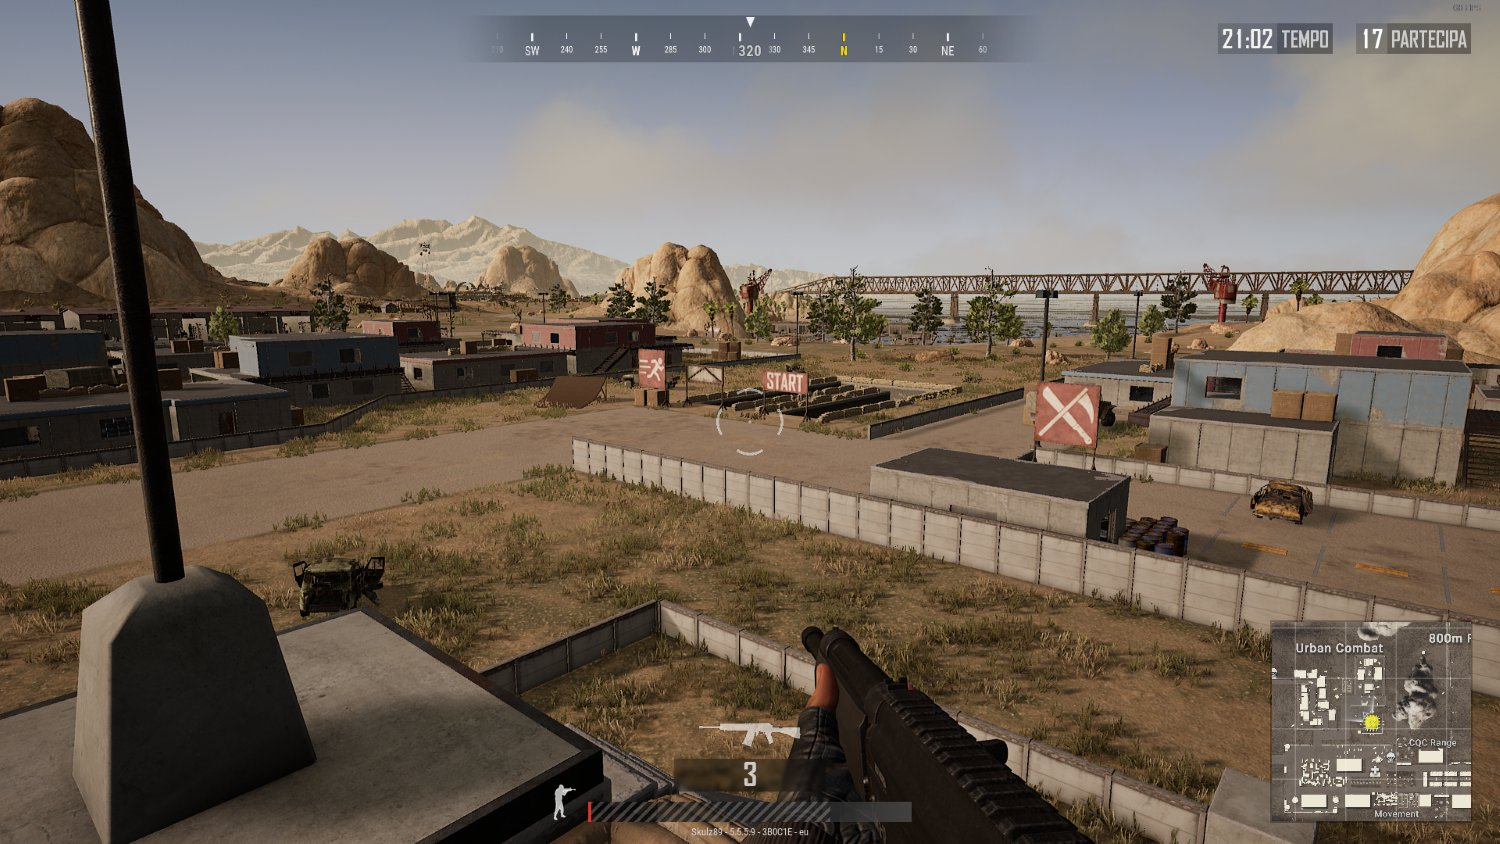 The best FoV (Field of View) for PUBG | Esports Tales